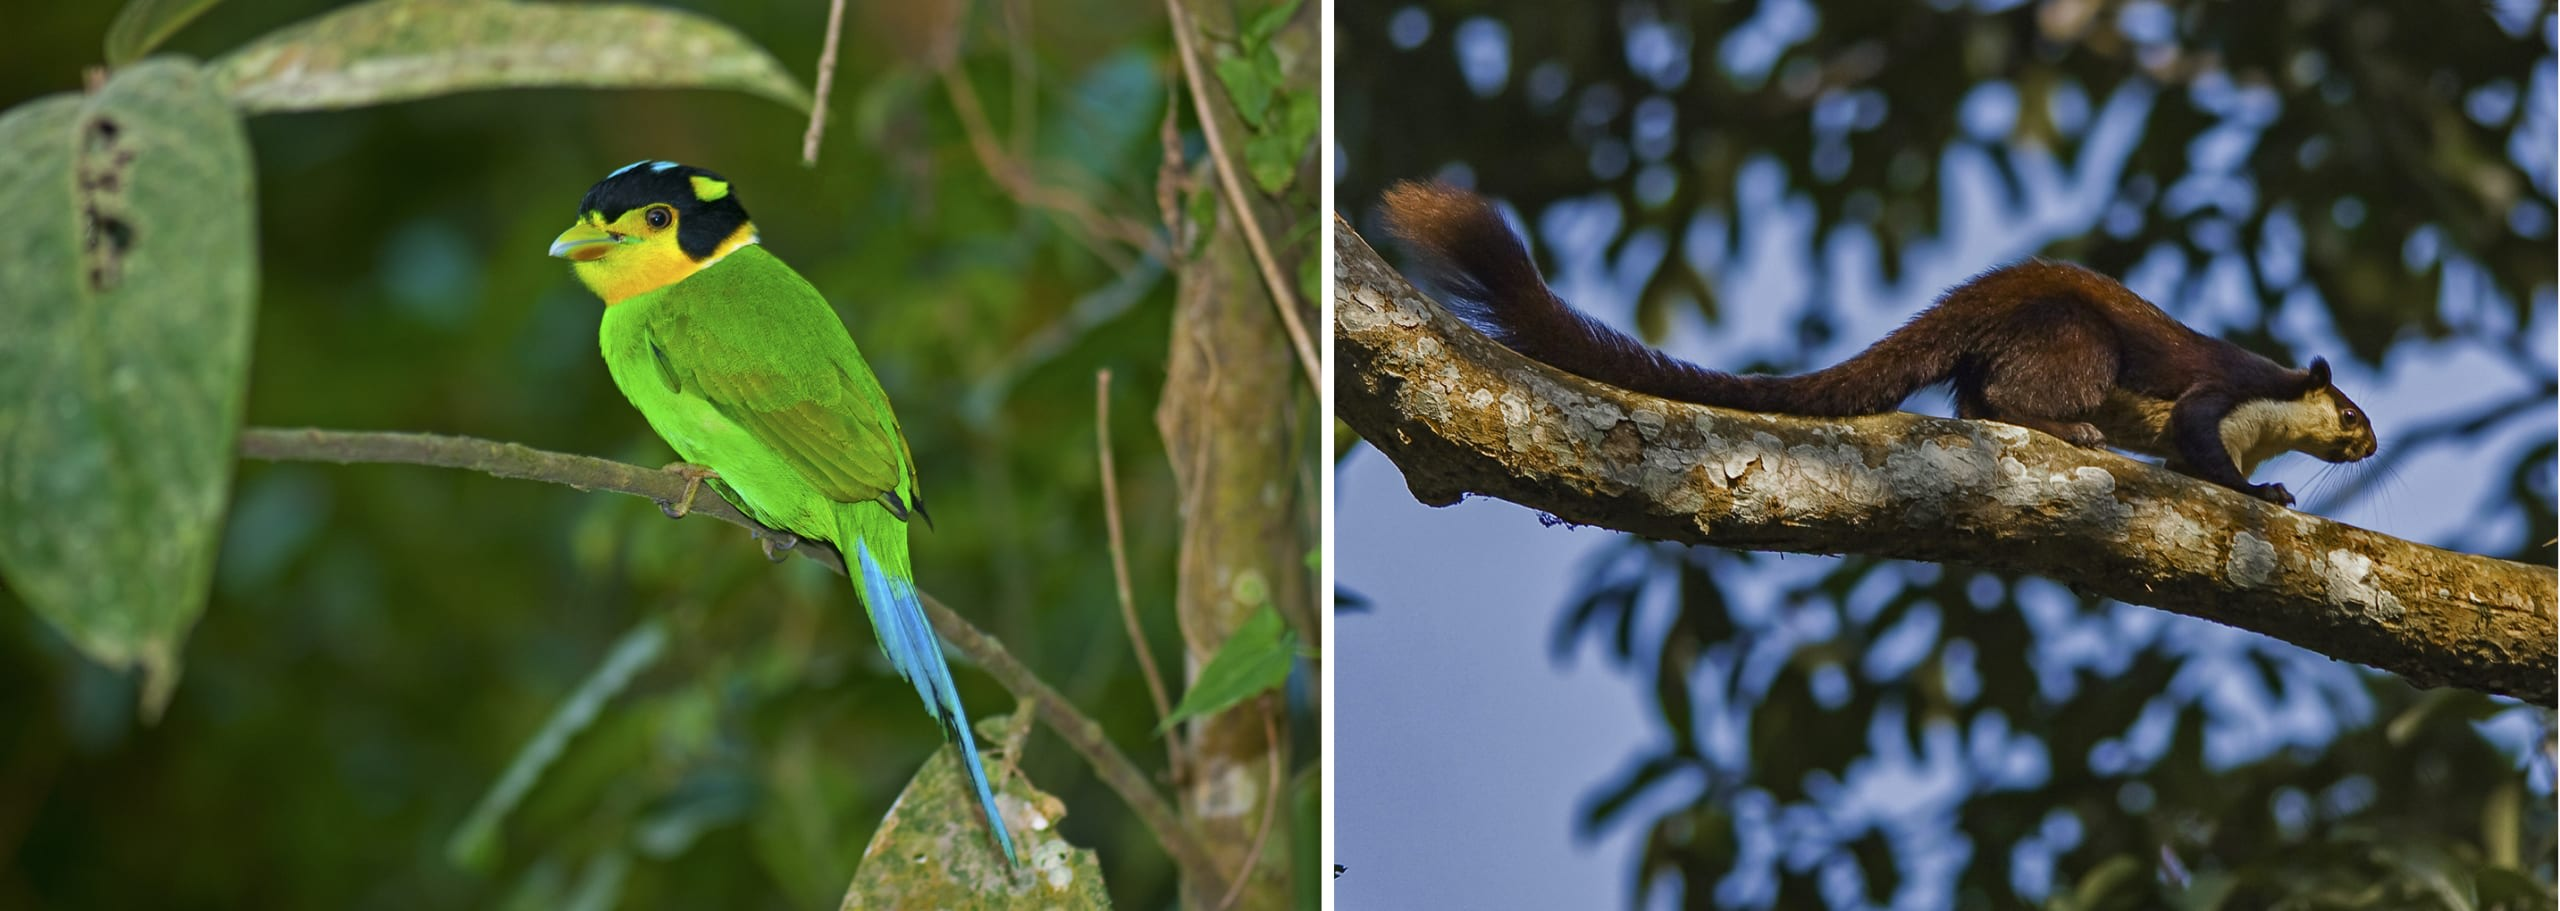 The diversity of life supported by the forest canopy is staggering. From mammals such as the Malayan giant squirrel (right) to moss and neon-coloured birds like the broadbill longtail (left). Photos: Dhritiman Mukherjee